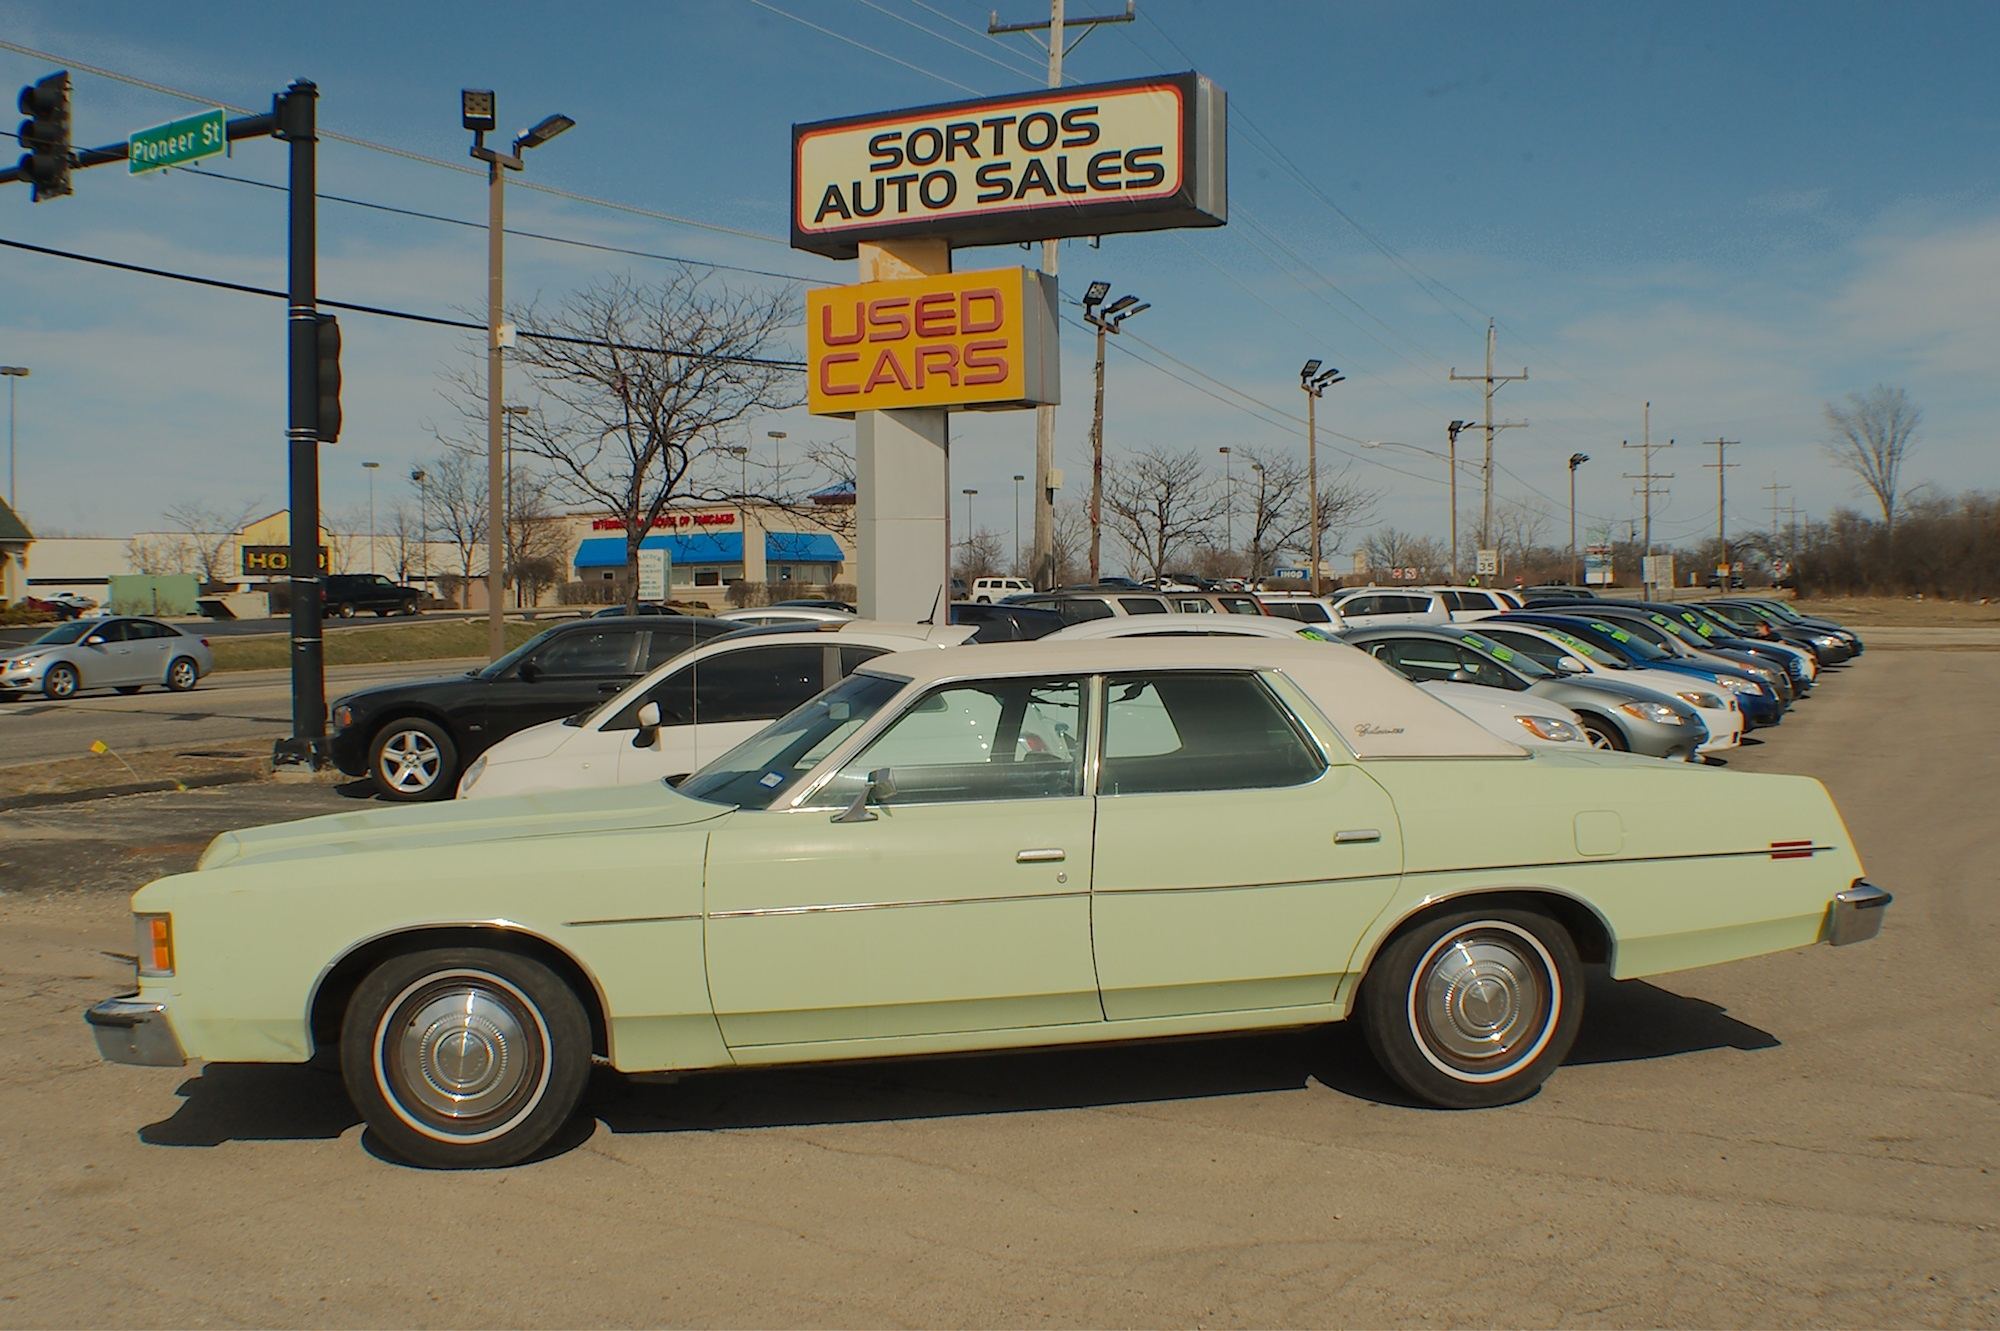 1973 Ford Galaxie 500 Green Sedan Used Car Sale Antioch Zion Waukegan Lake County Illinois